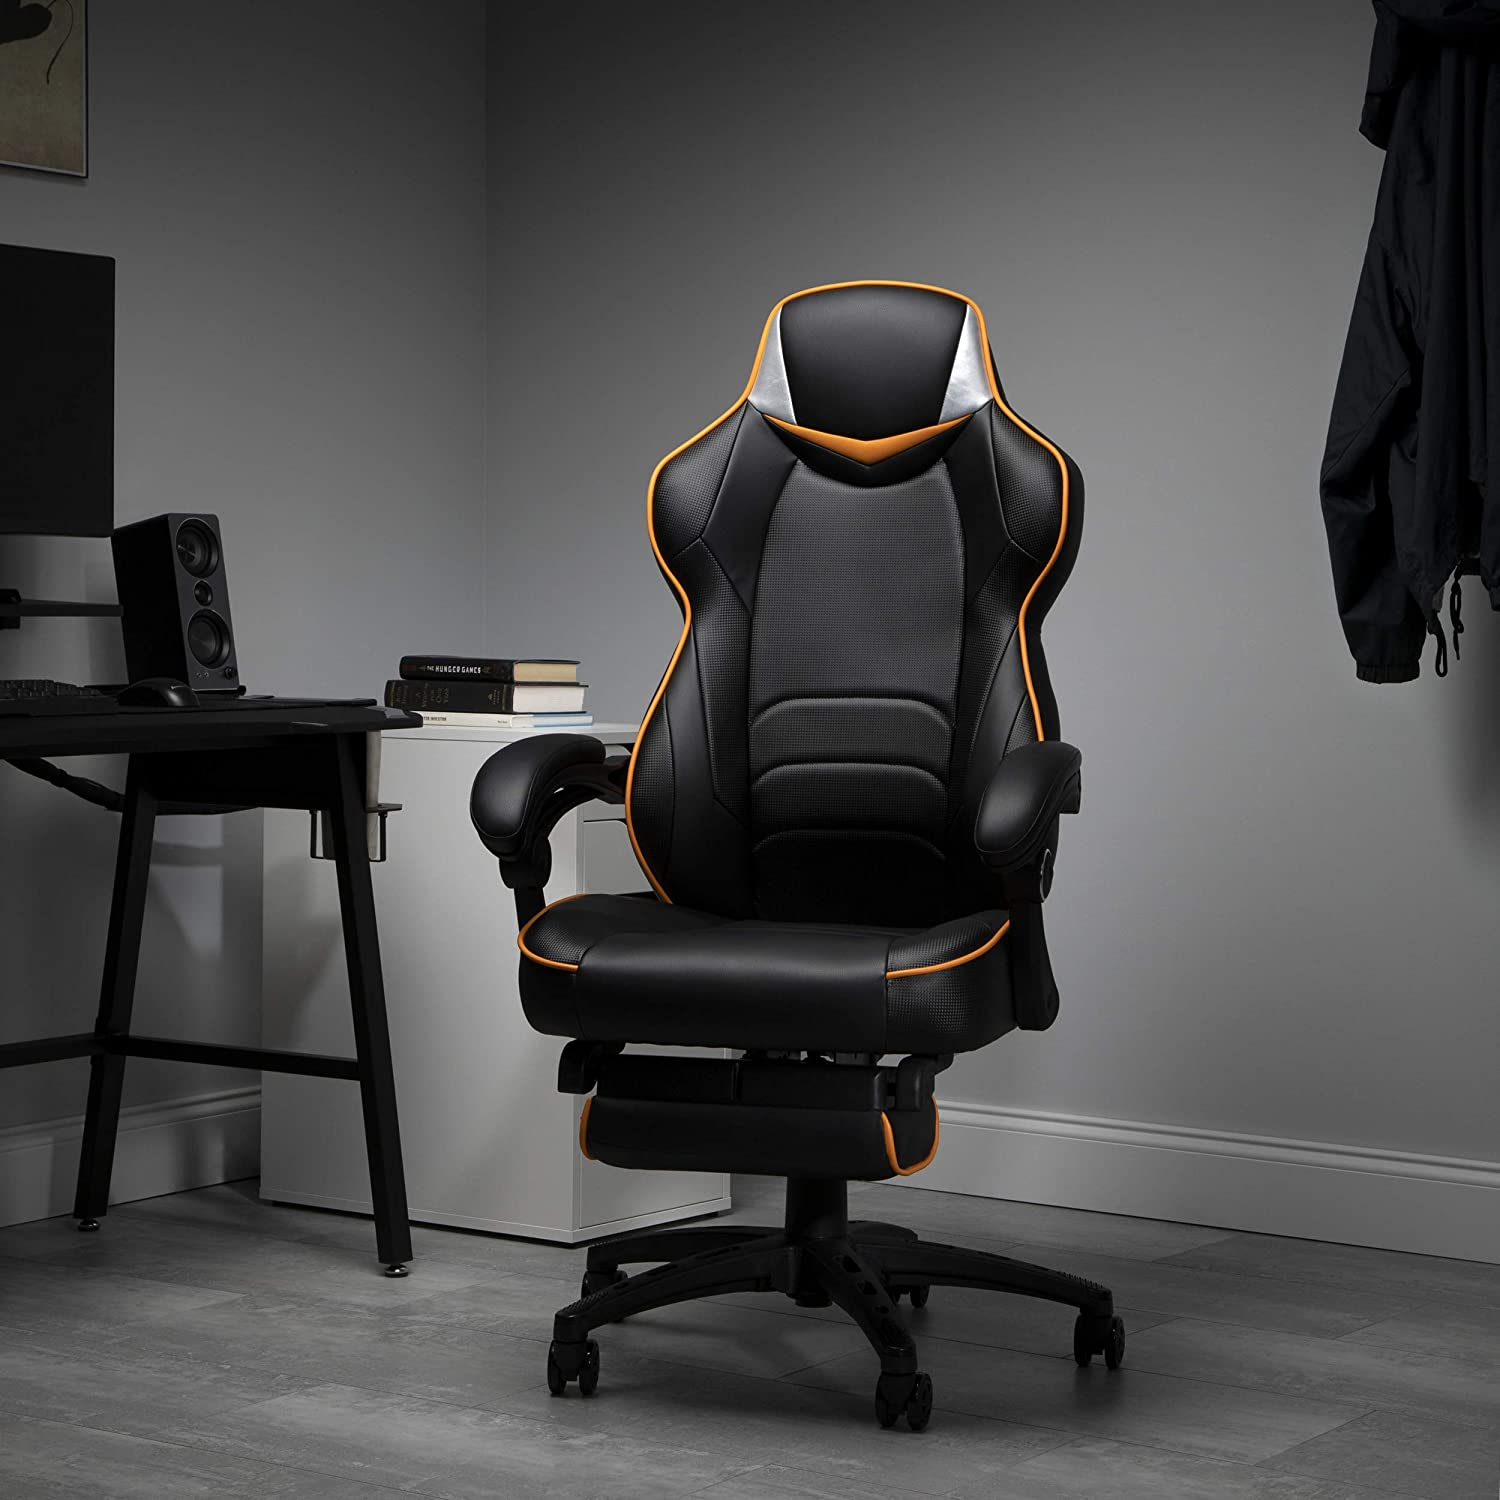 Top 10 Best Respawn Gaming Chairs In 2021 Review 36